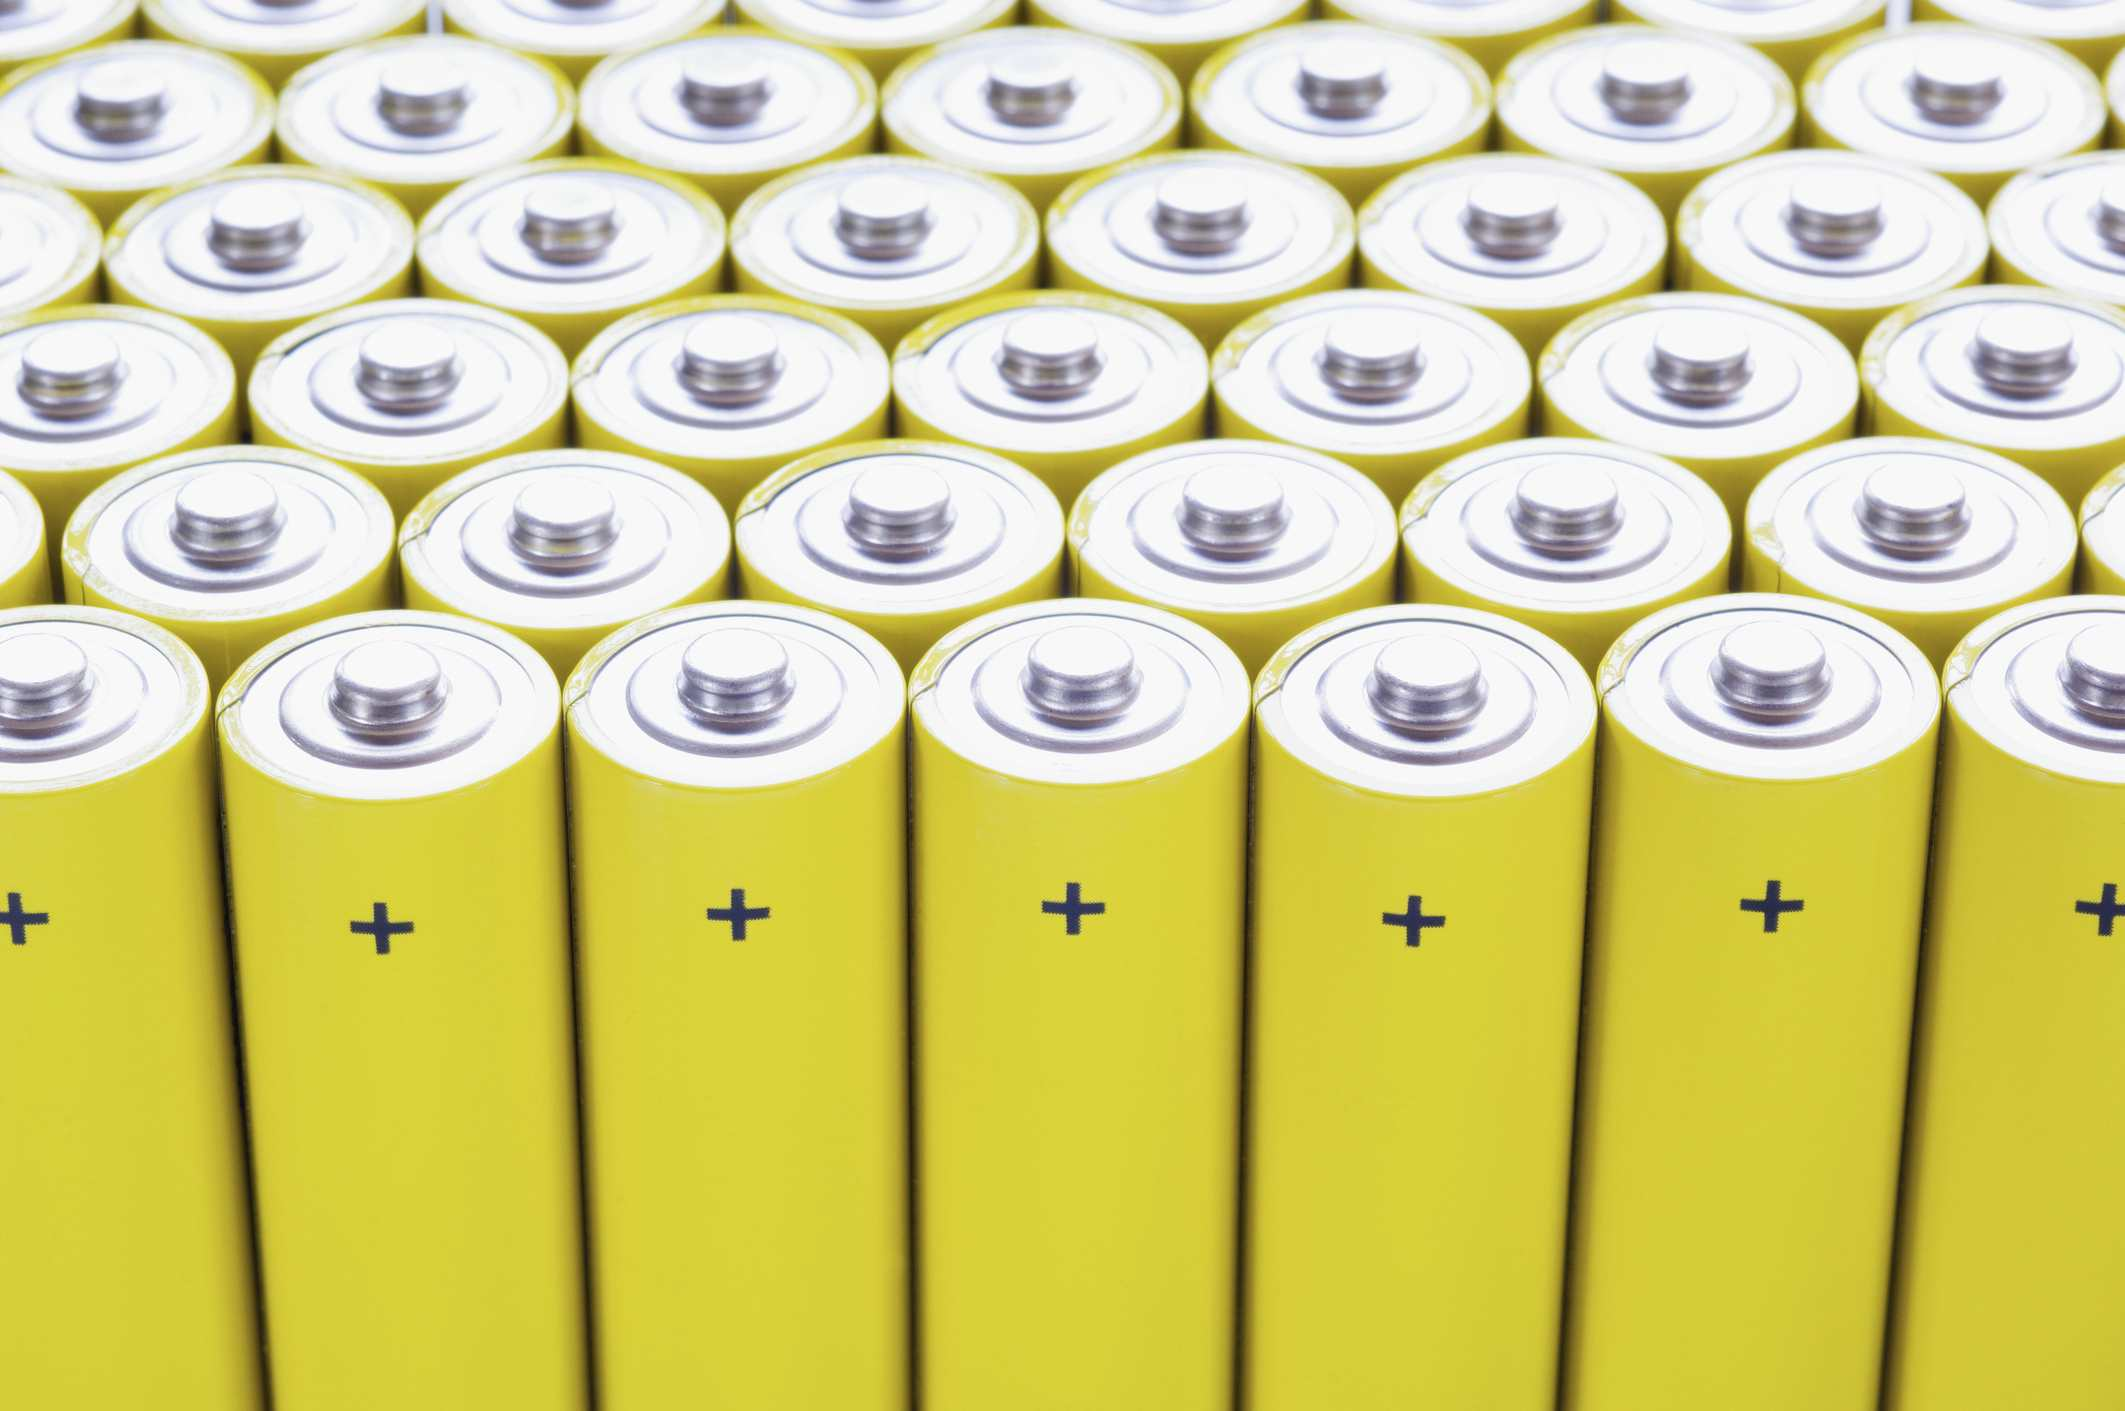 A vast array of batteries